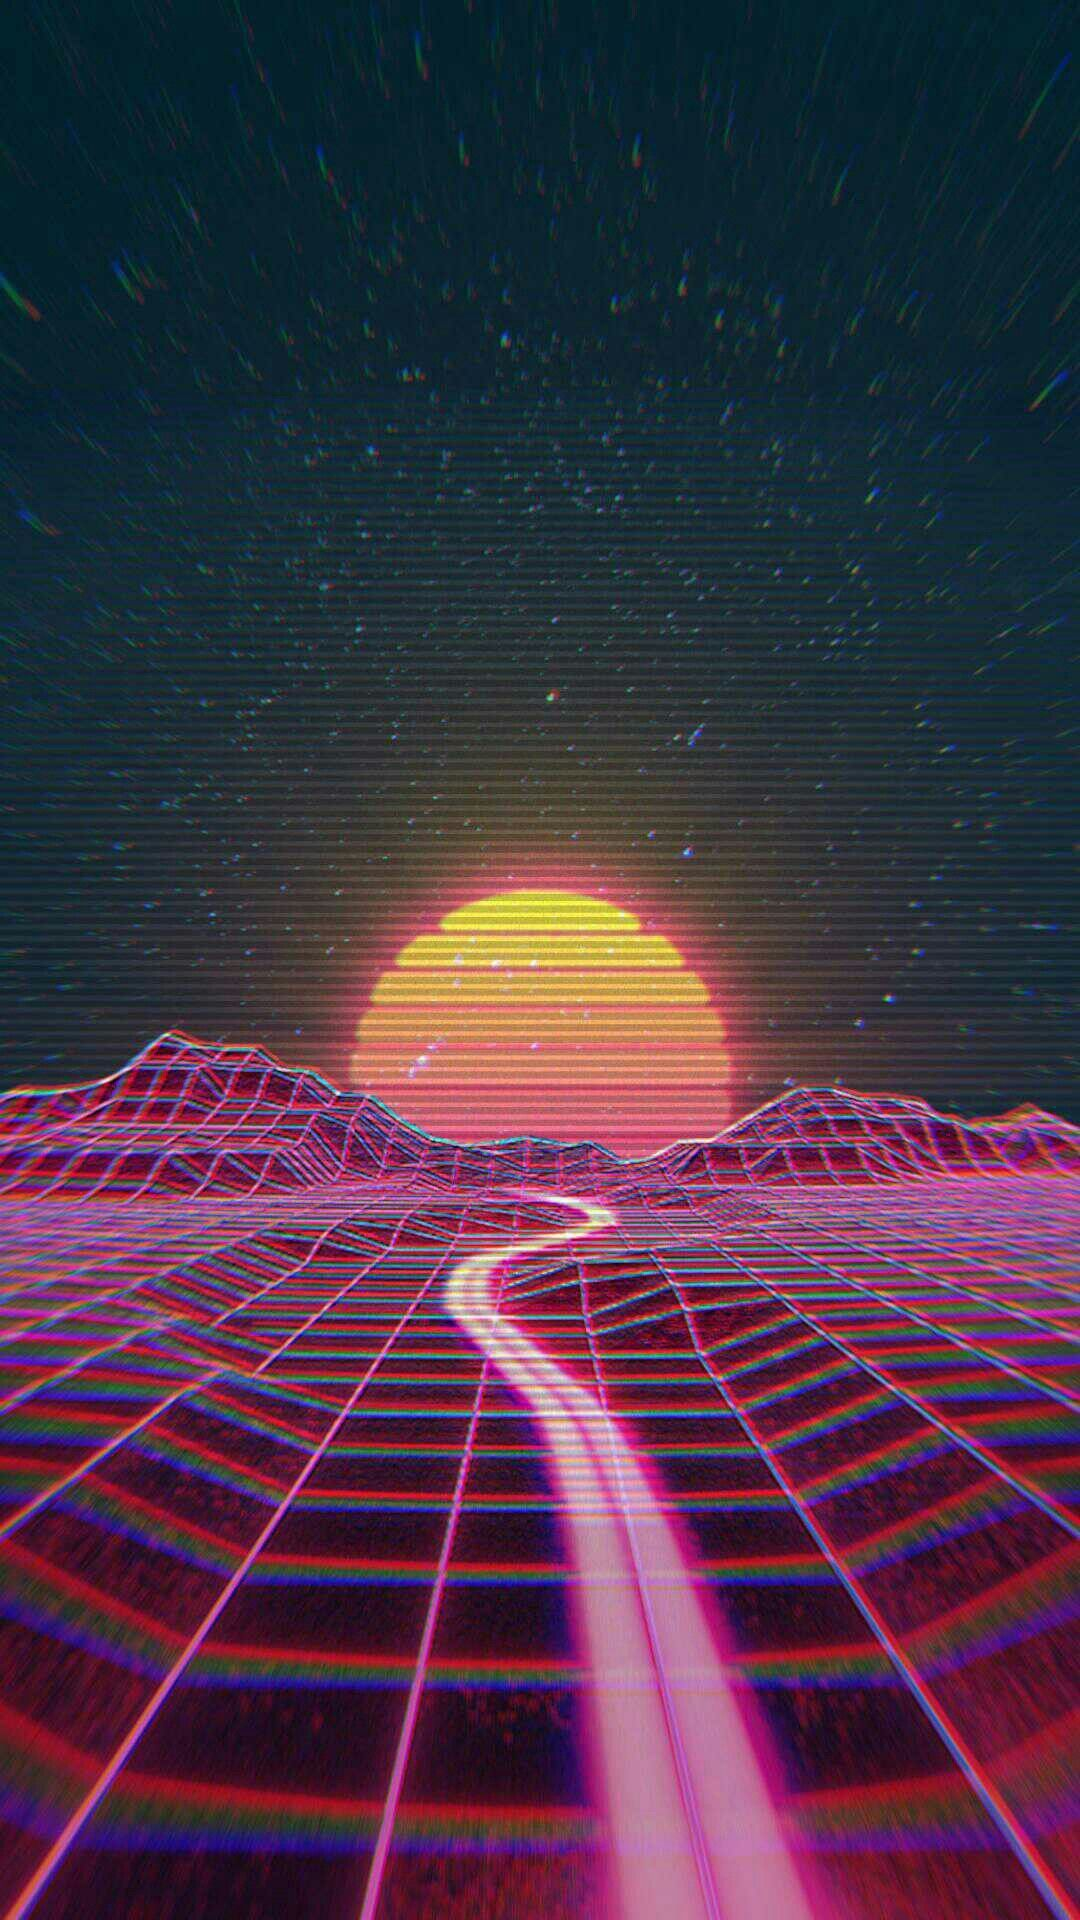 80s Aesthetic Wallpapers   Top 80s Aesthetic Backgrounds 1080x1920